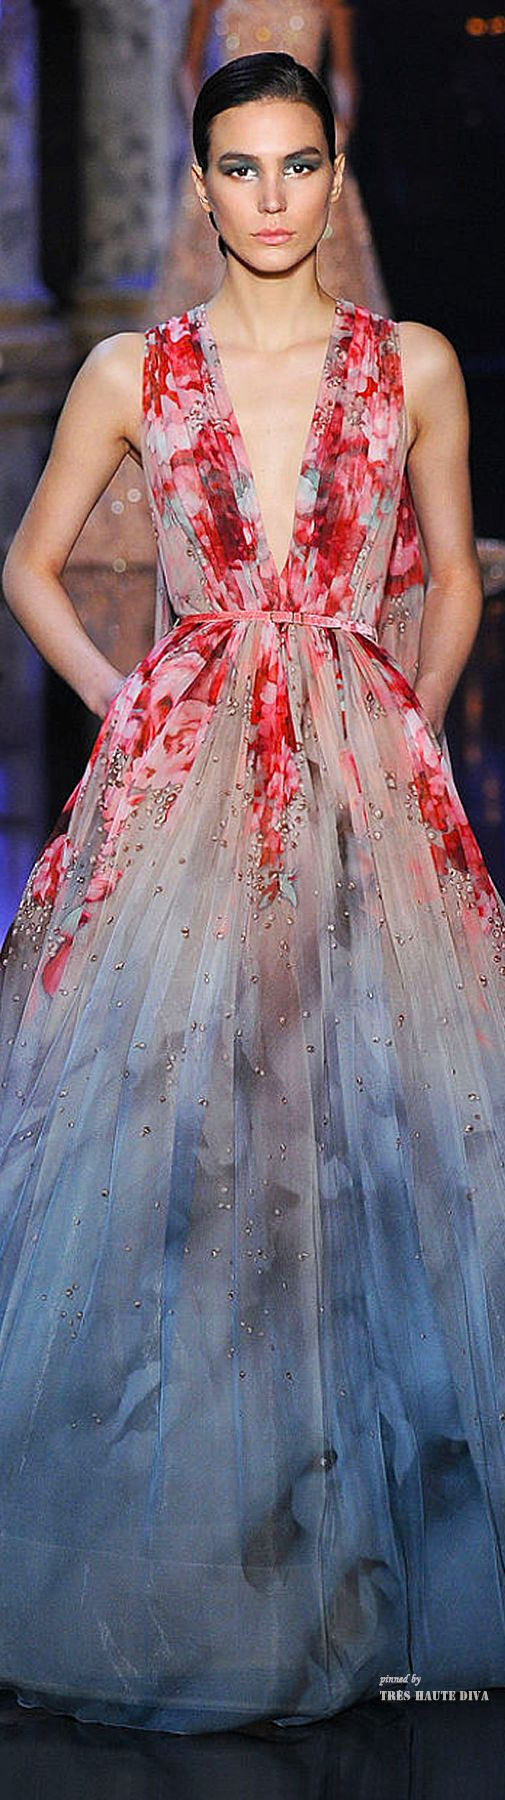 Elie Saab Herbst/Winter 2014-2015 - Couture